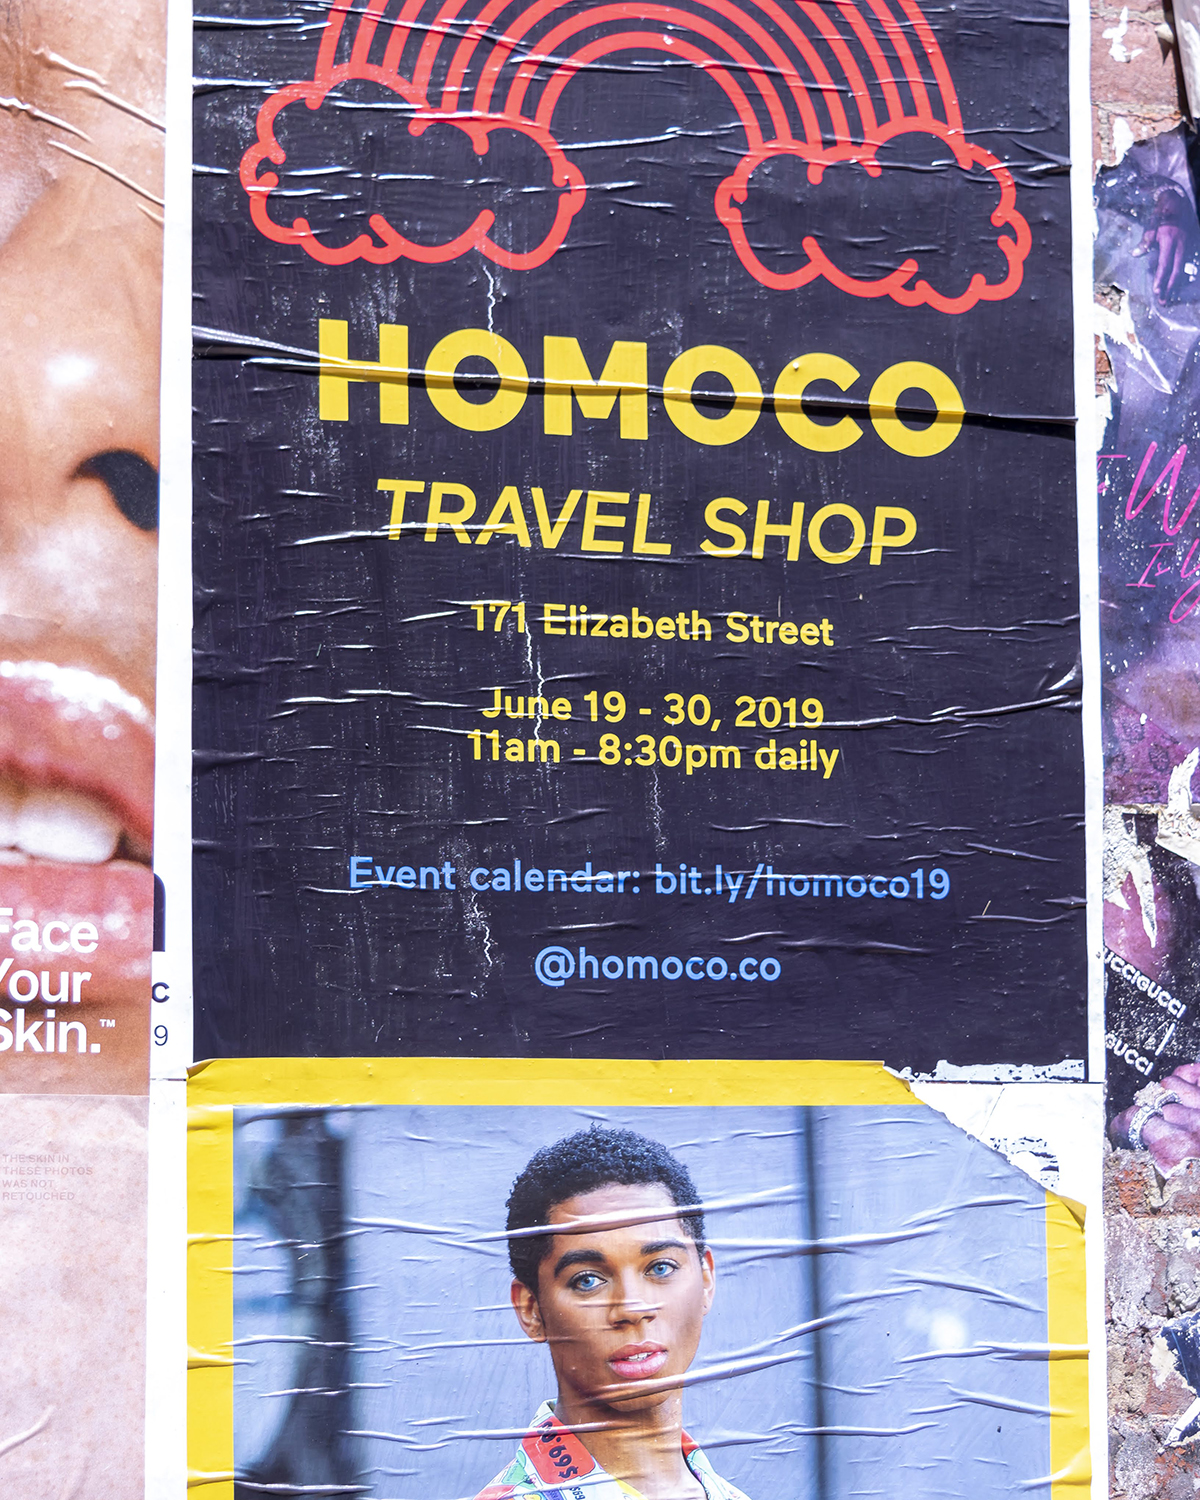 Poster advertising HOMOCO pop-up store